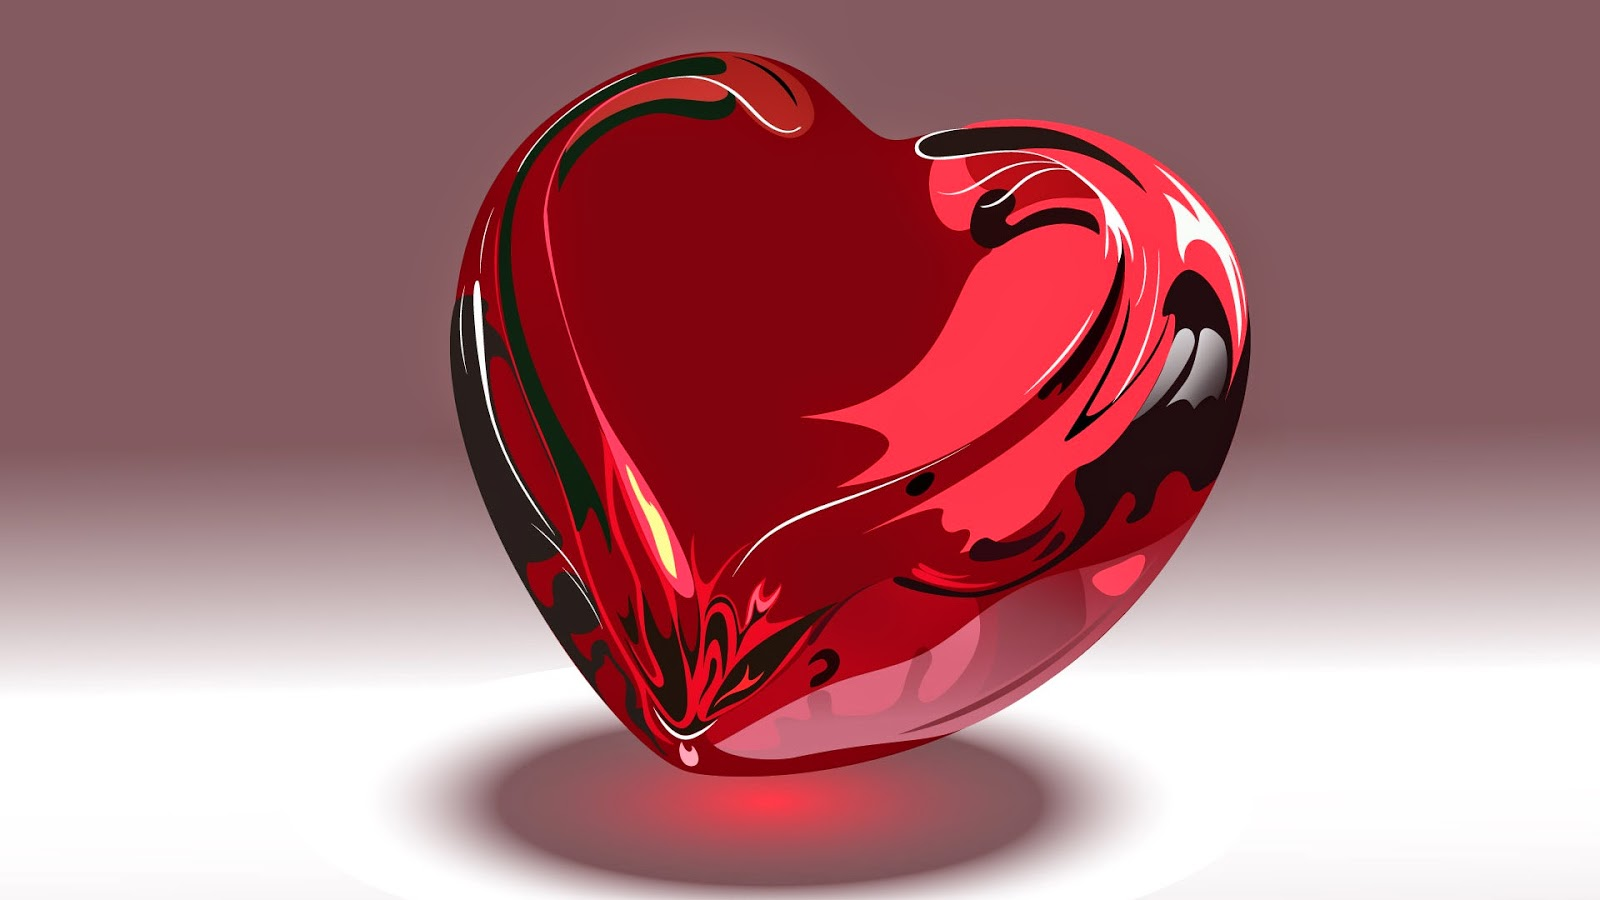 loving-heart-hd-love-wallpaper-transparent